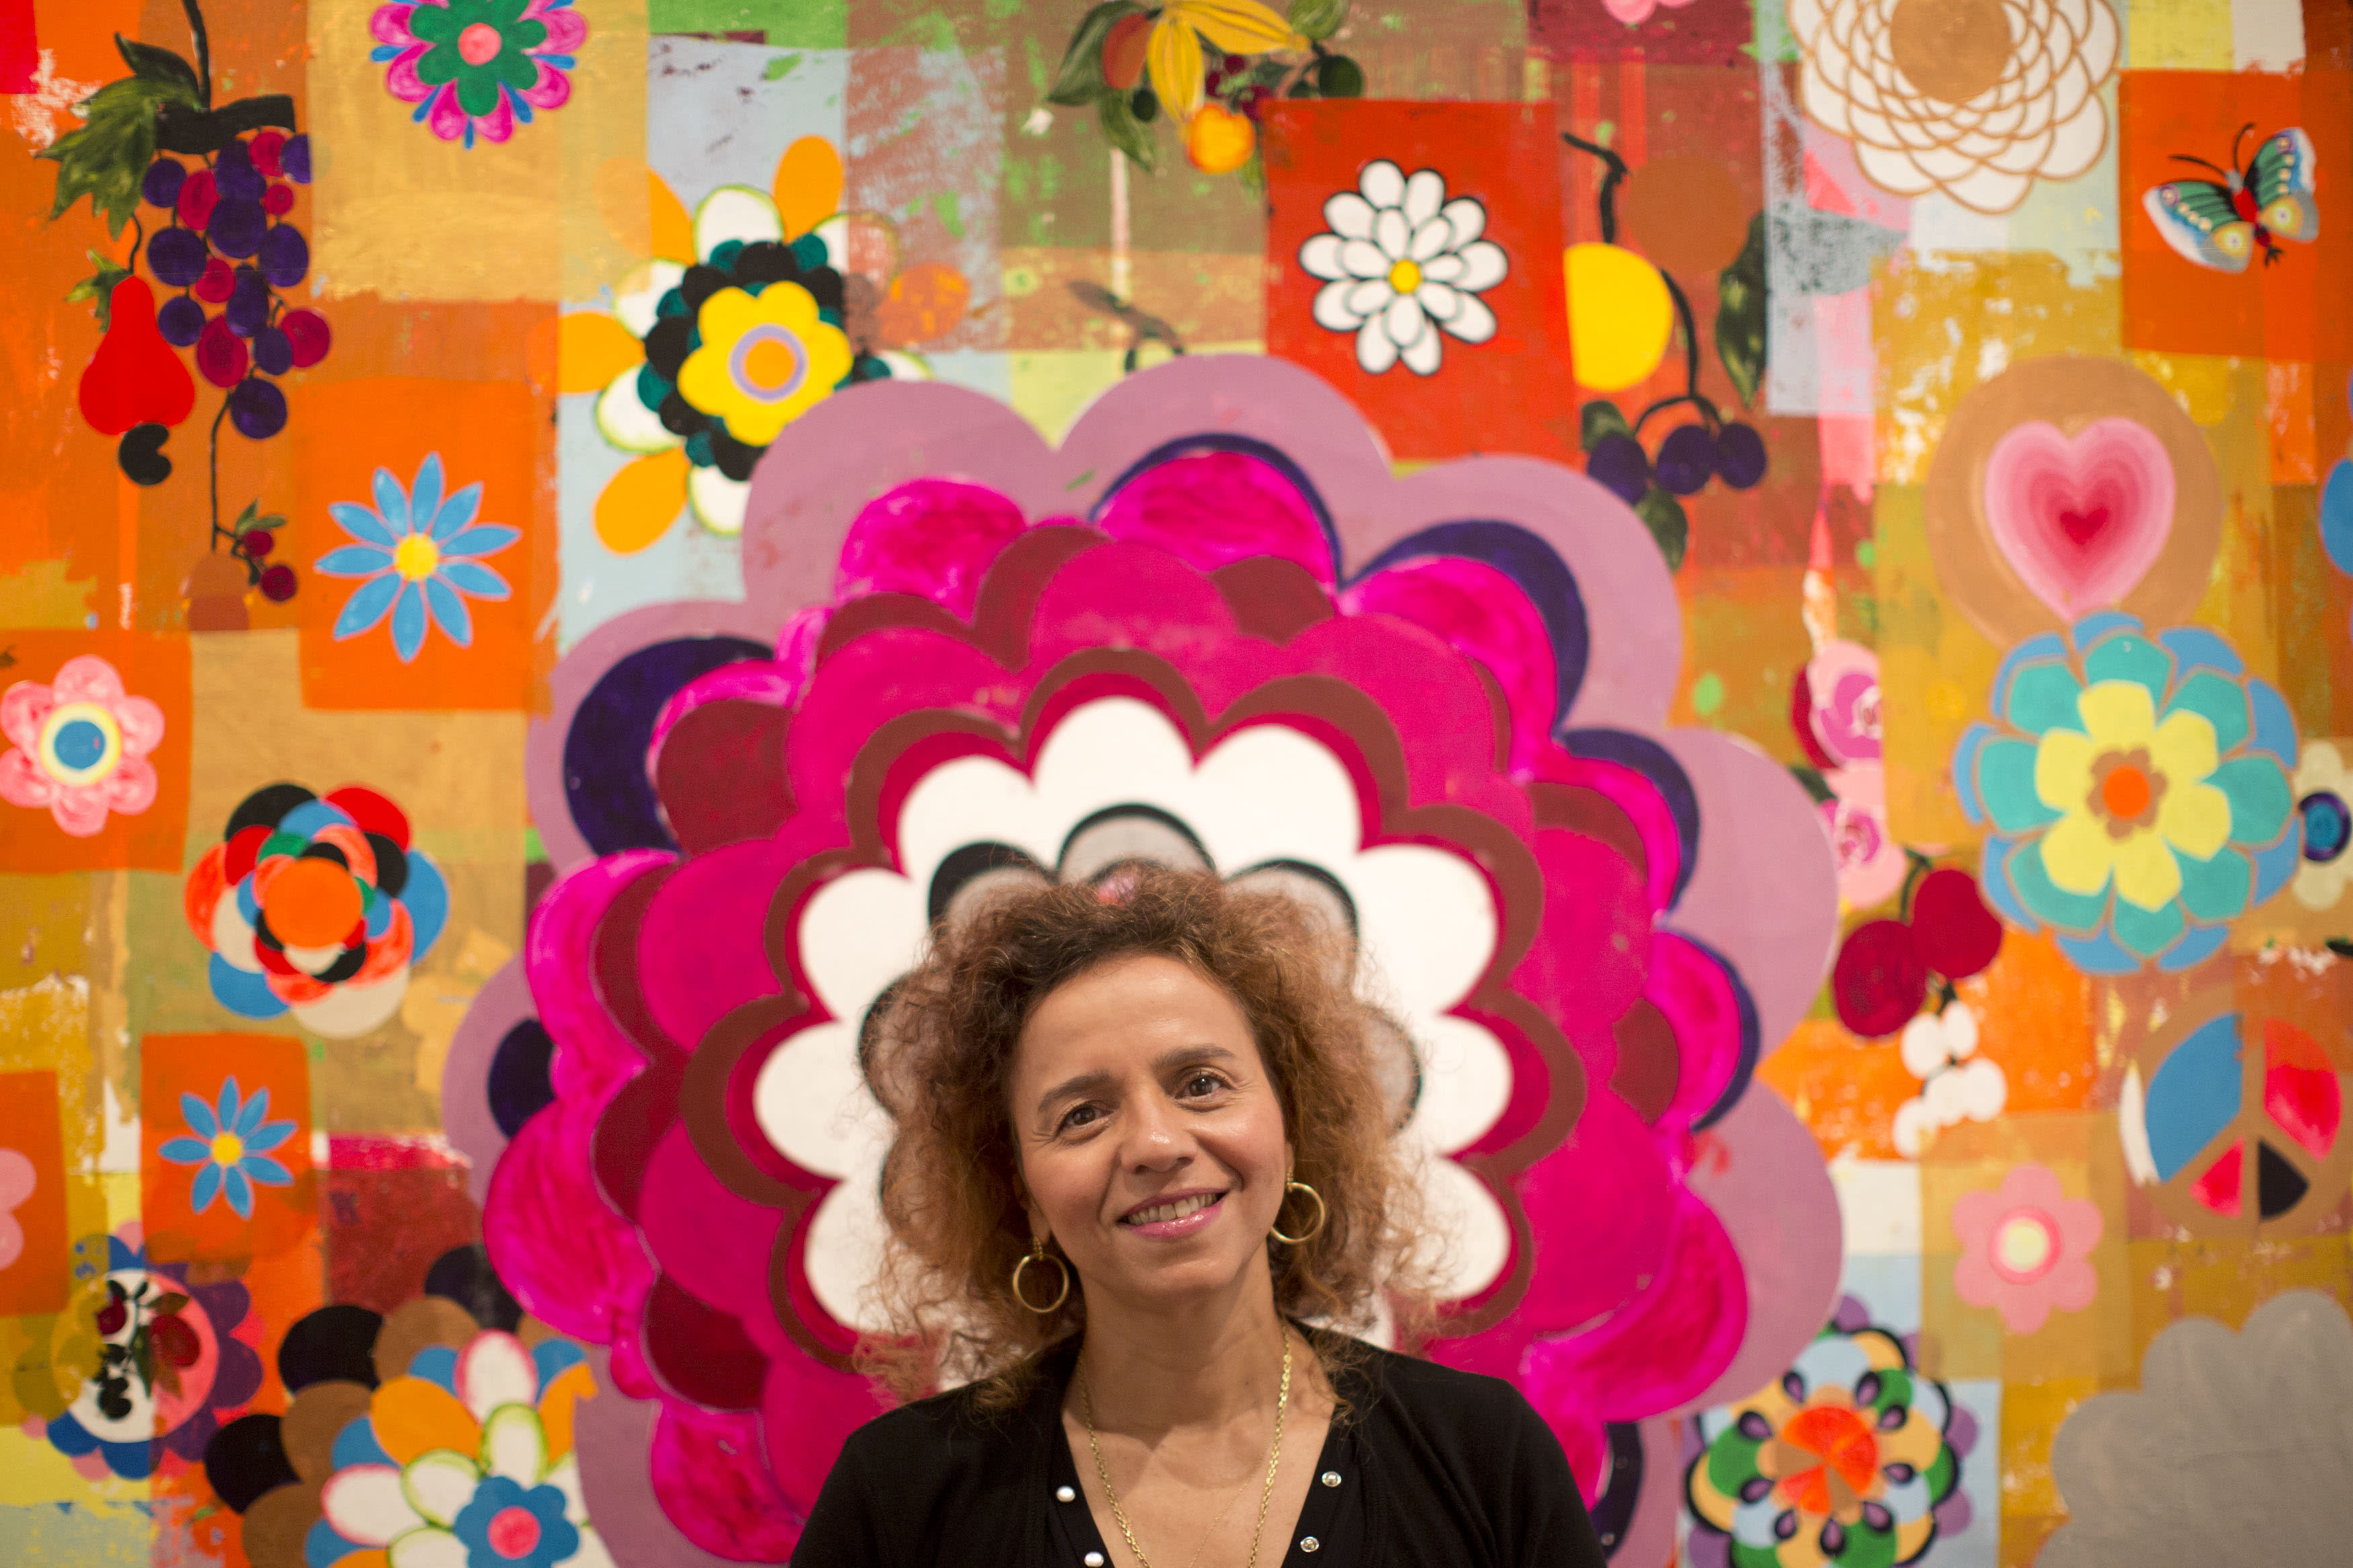 Brazilian artist Beatriz Milhazes poses for a portrait in front of one of her paintings in Rio de Janeiro, Brazil, Friday, Aug. 23, 2013. More than a decade after her last show in her native Rio de Janeiro, Brazil's highest-paid artist is gearing up for a homecoming of sorts, a major retrospective spanning most of her 30-year career. (AP Photo/Felipe Dana)